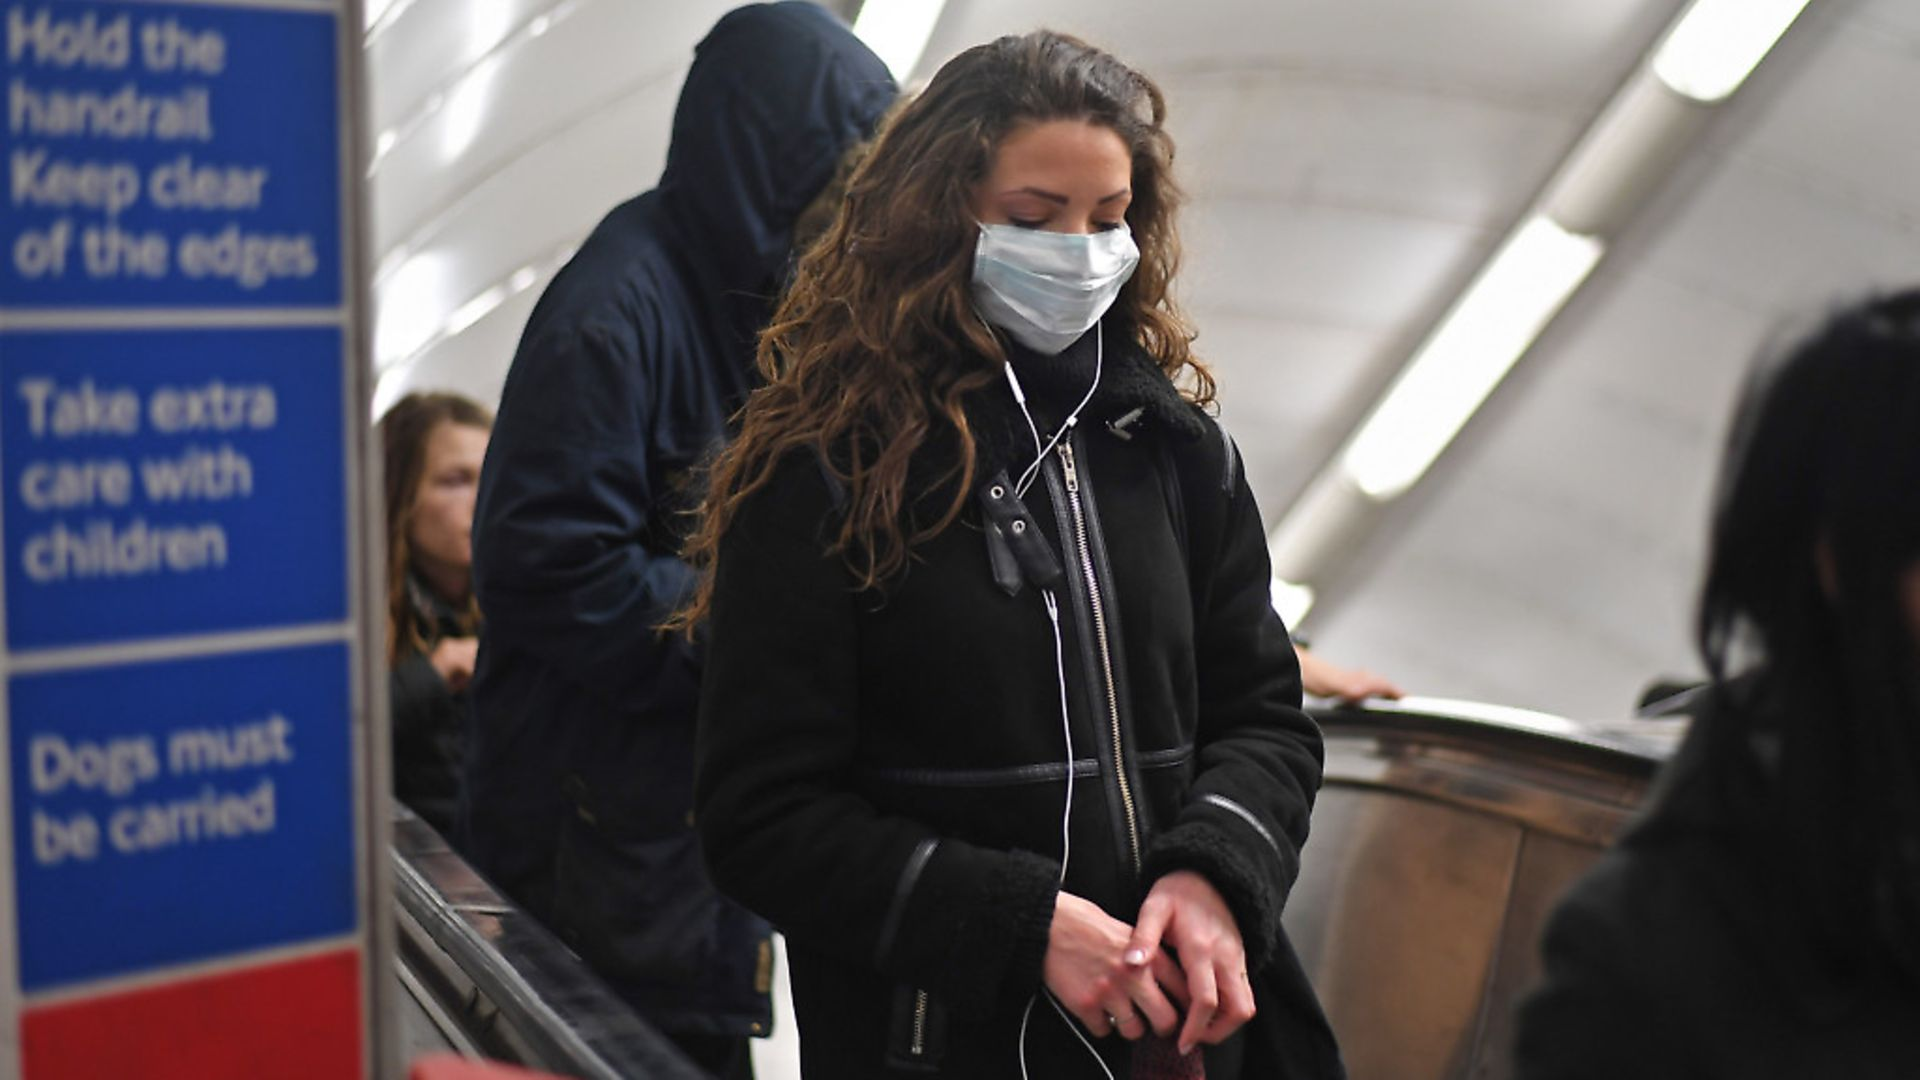 A woman at Green Park station on the London Underground tube network wearing a protective facemask. Photograph: Kirsty O'Connor/PA Wire. - Credit: PA